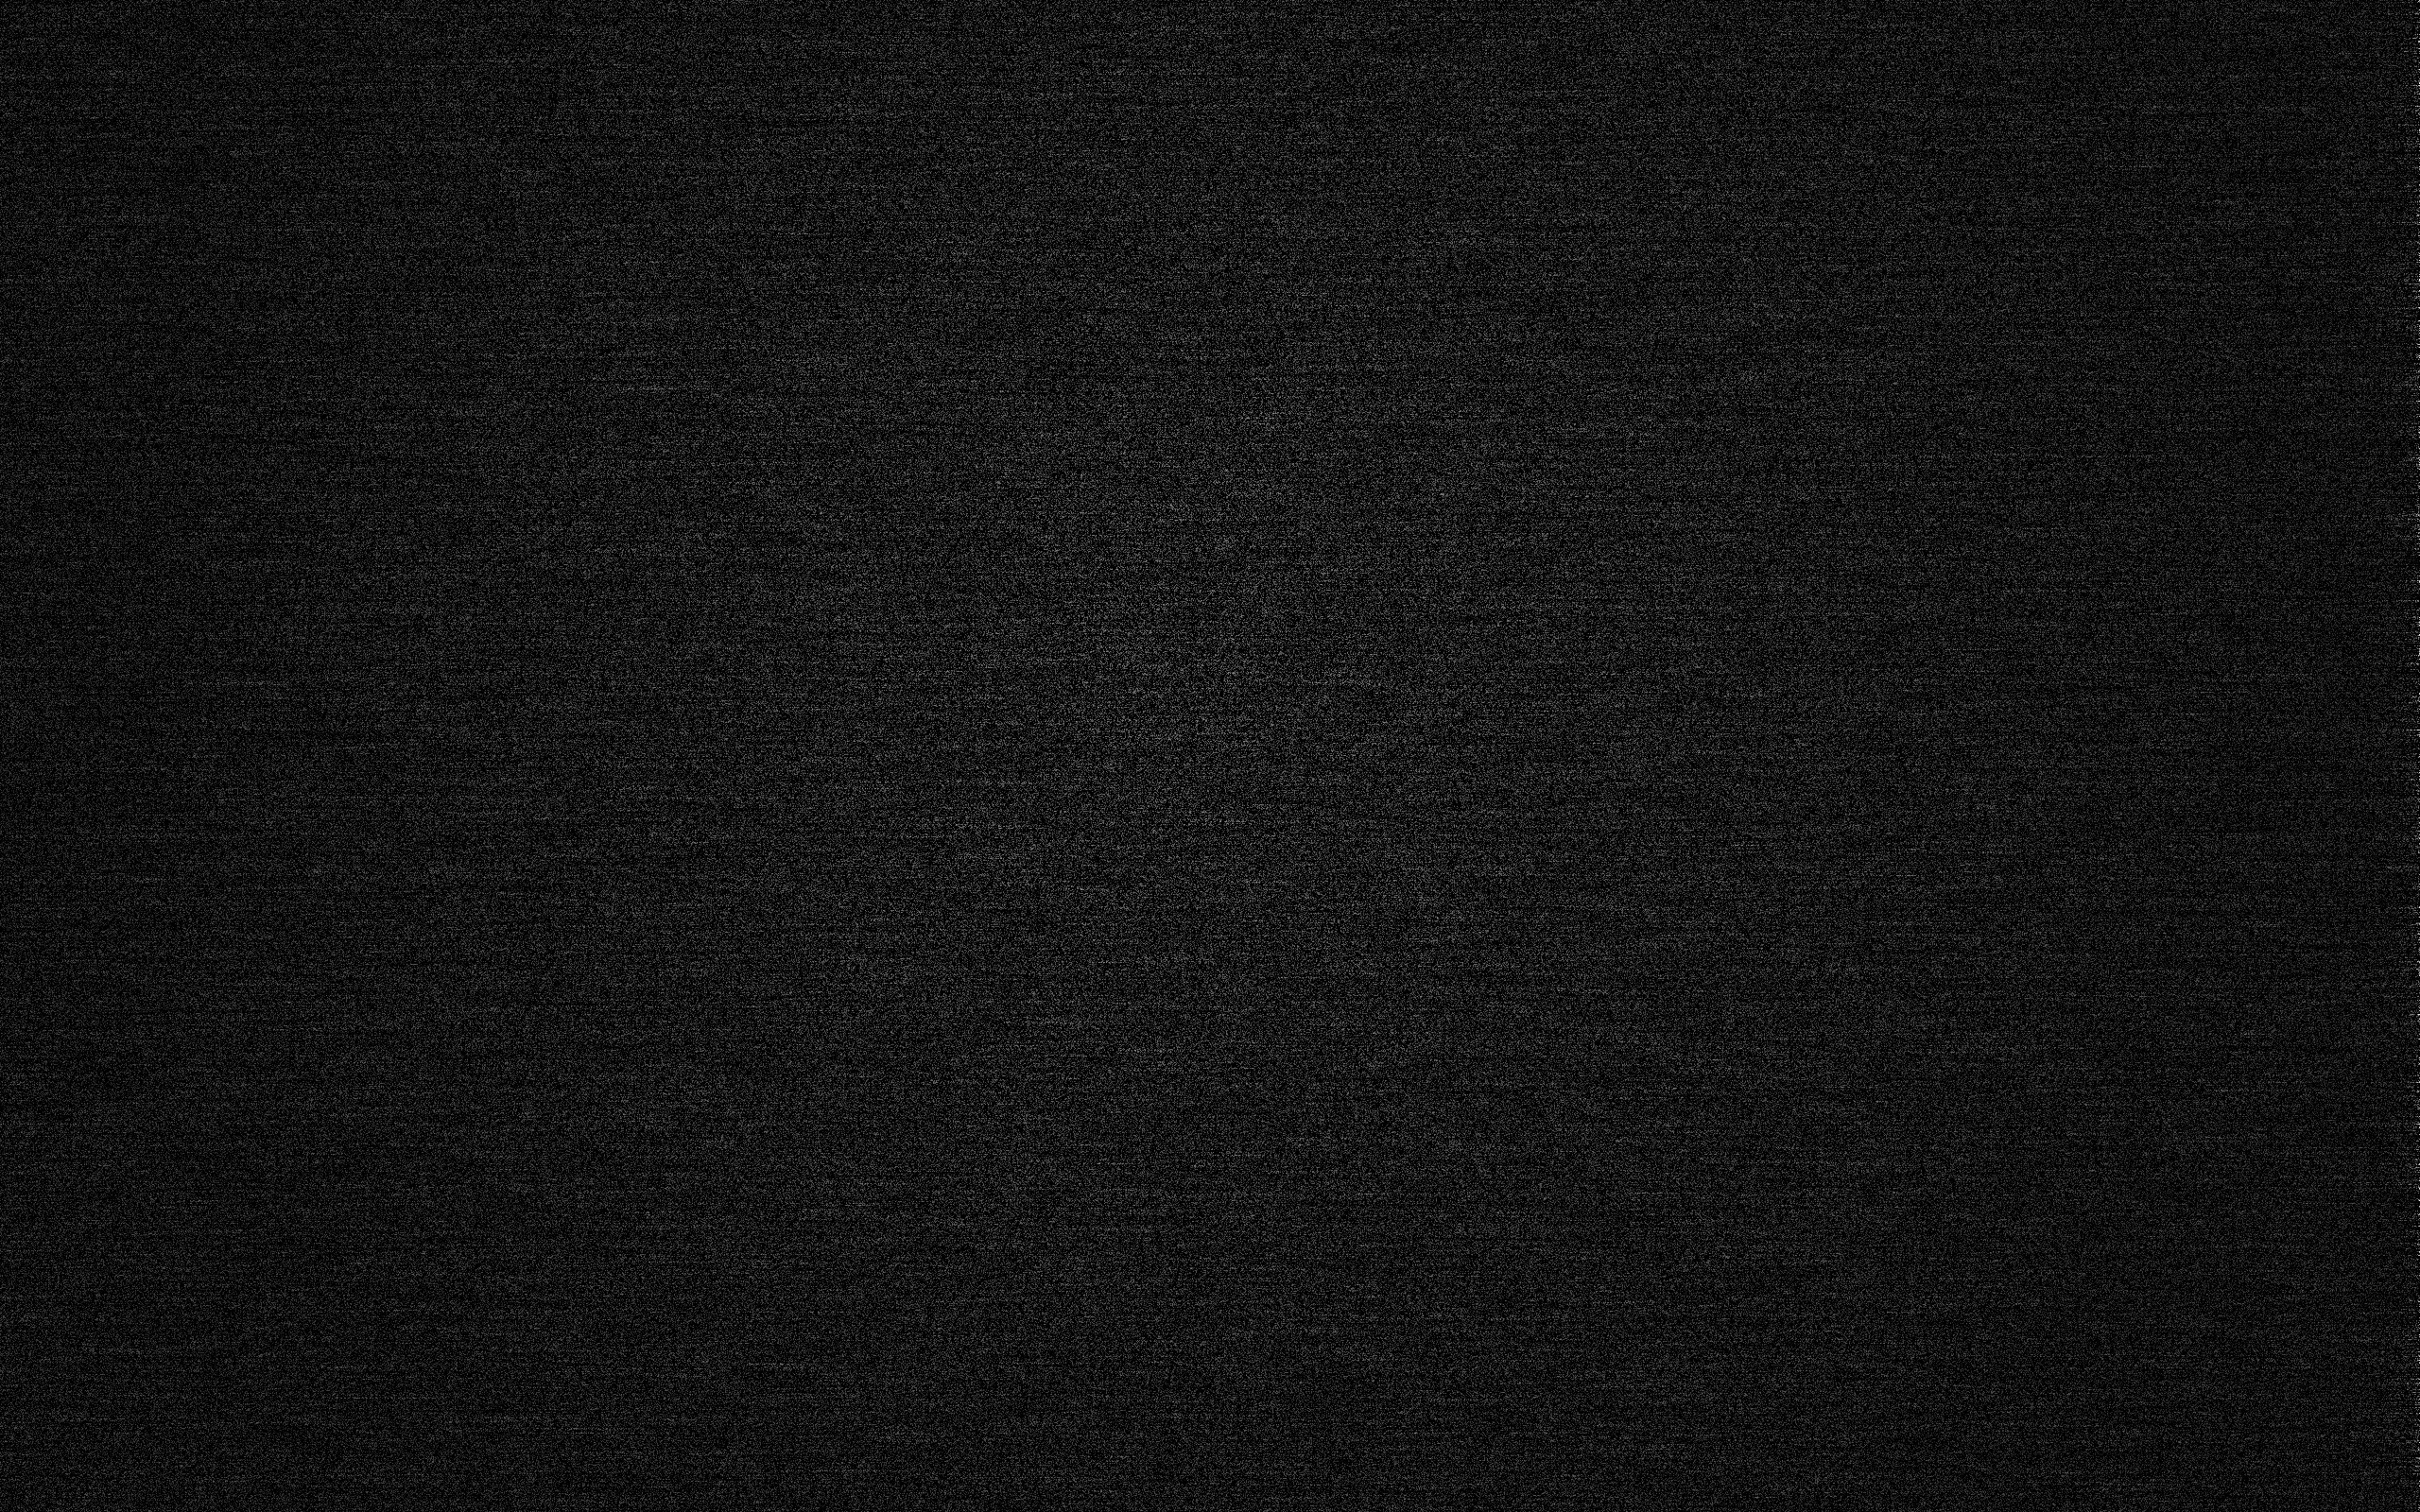 Black Linen Wallpaper Wallpapersafari